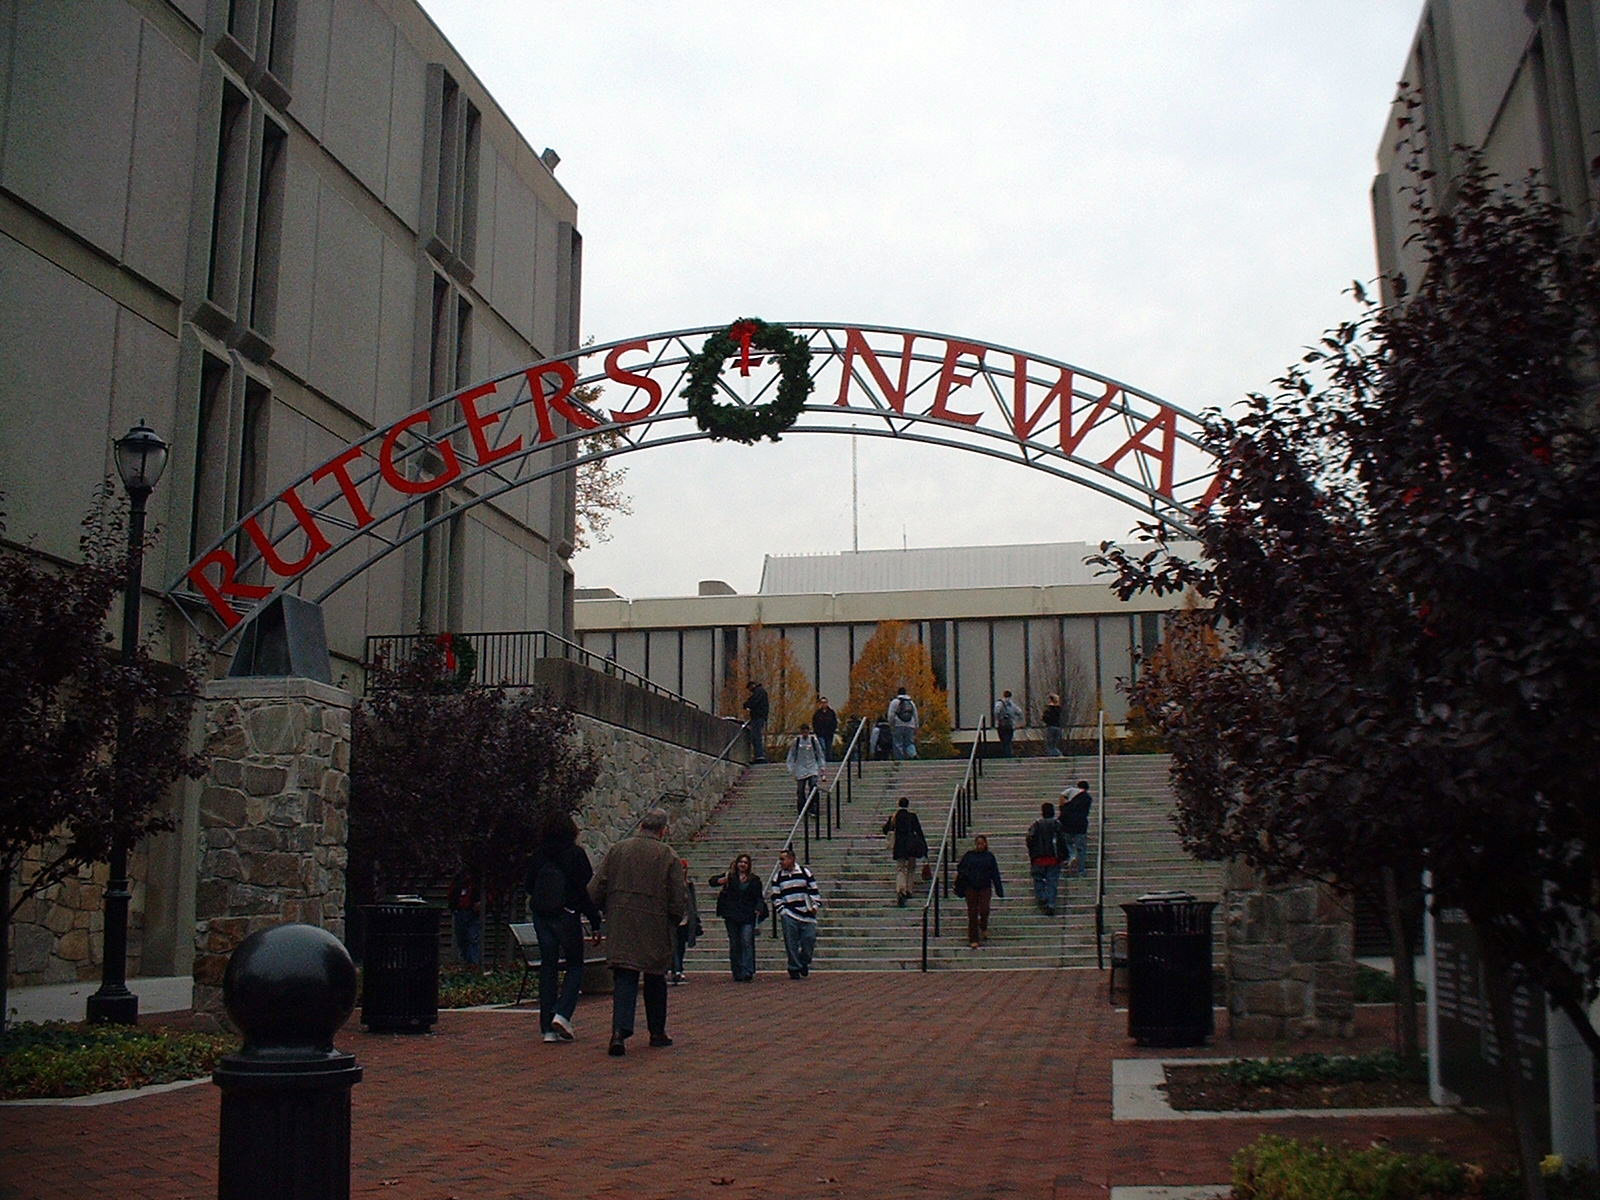 File:RUTGERS-Newark.JPG - Wikimedia Commons